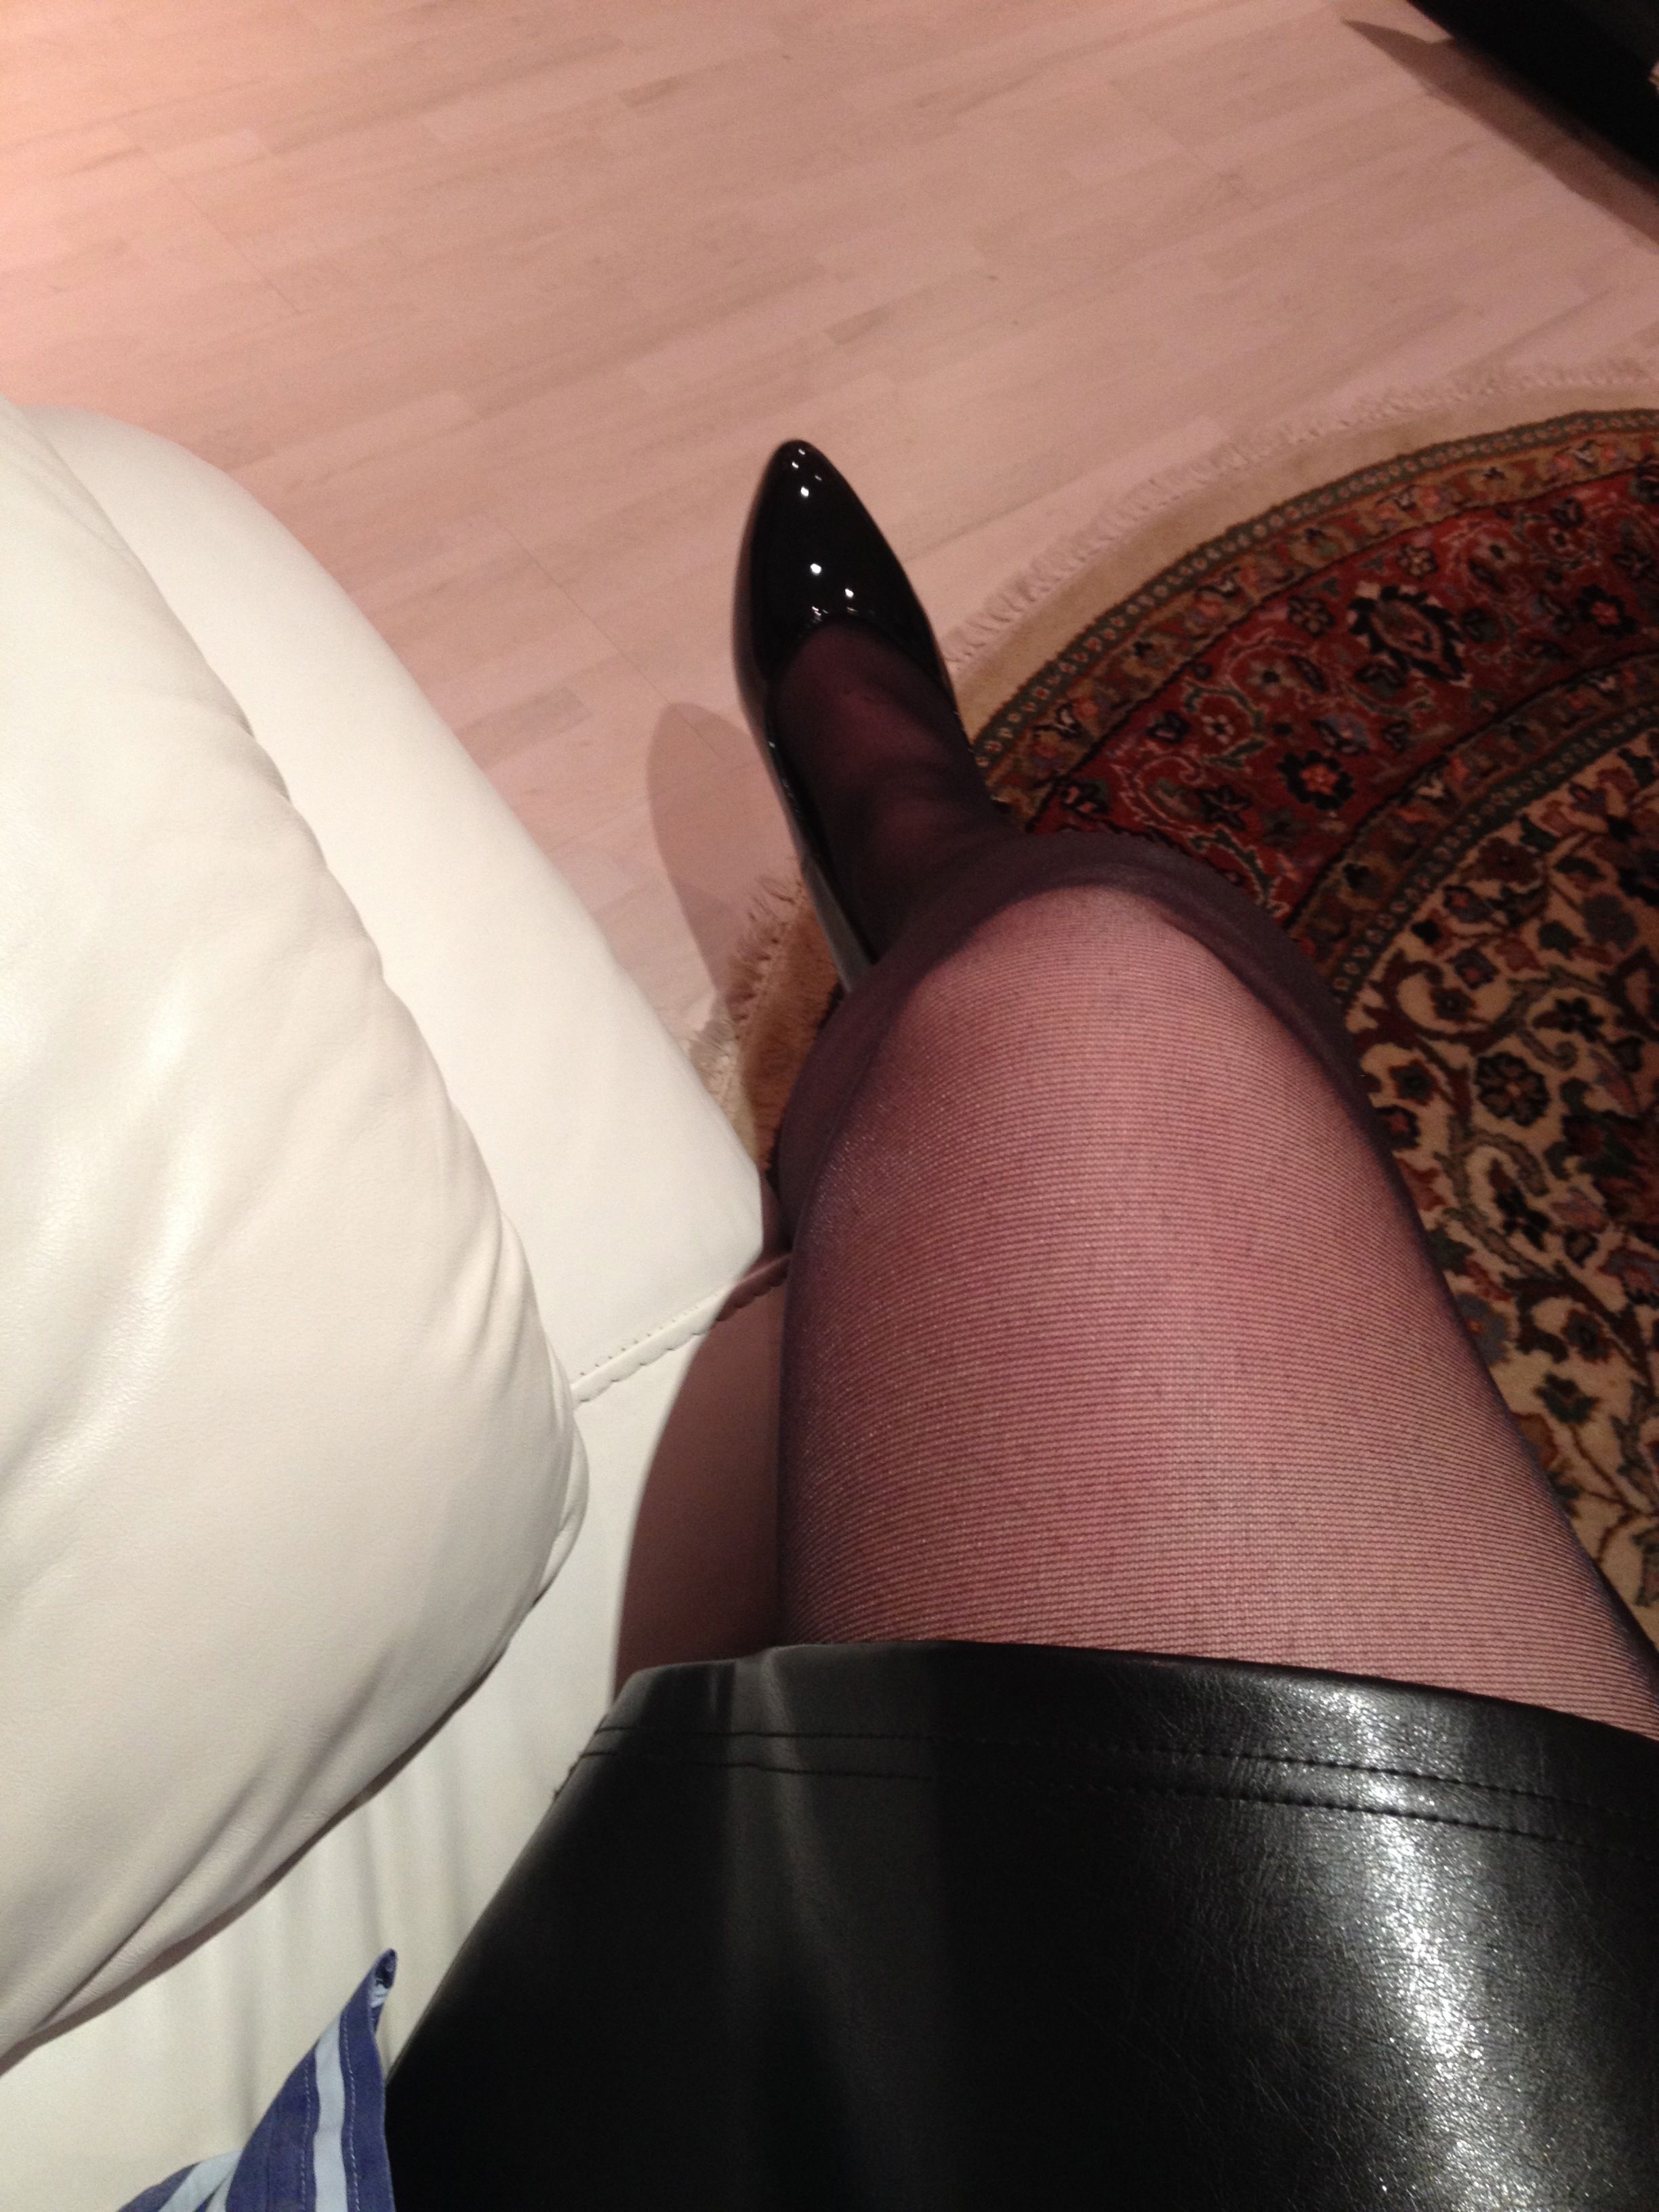 Cannot be! Crossed legs teens tights